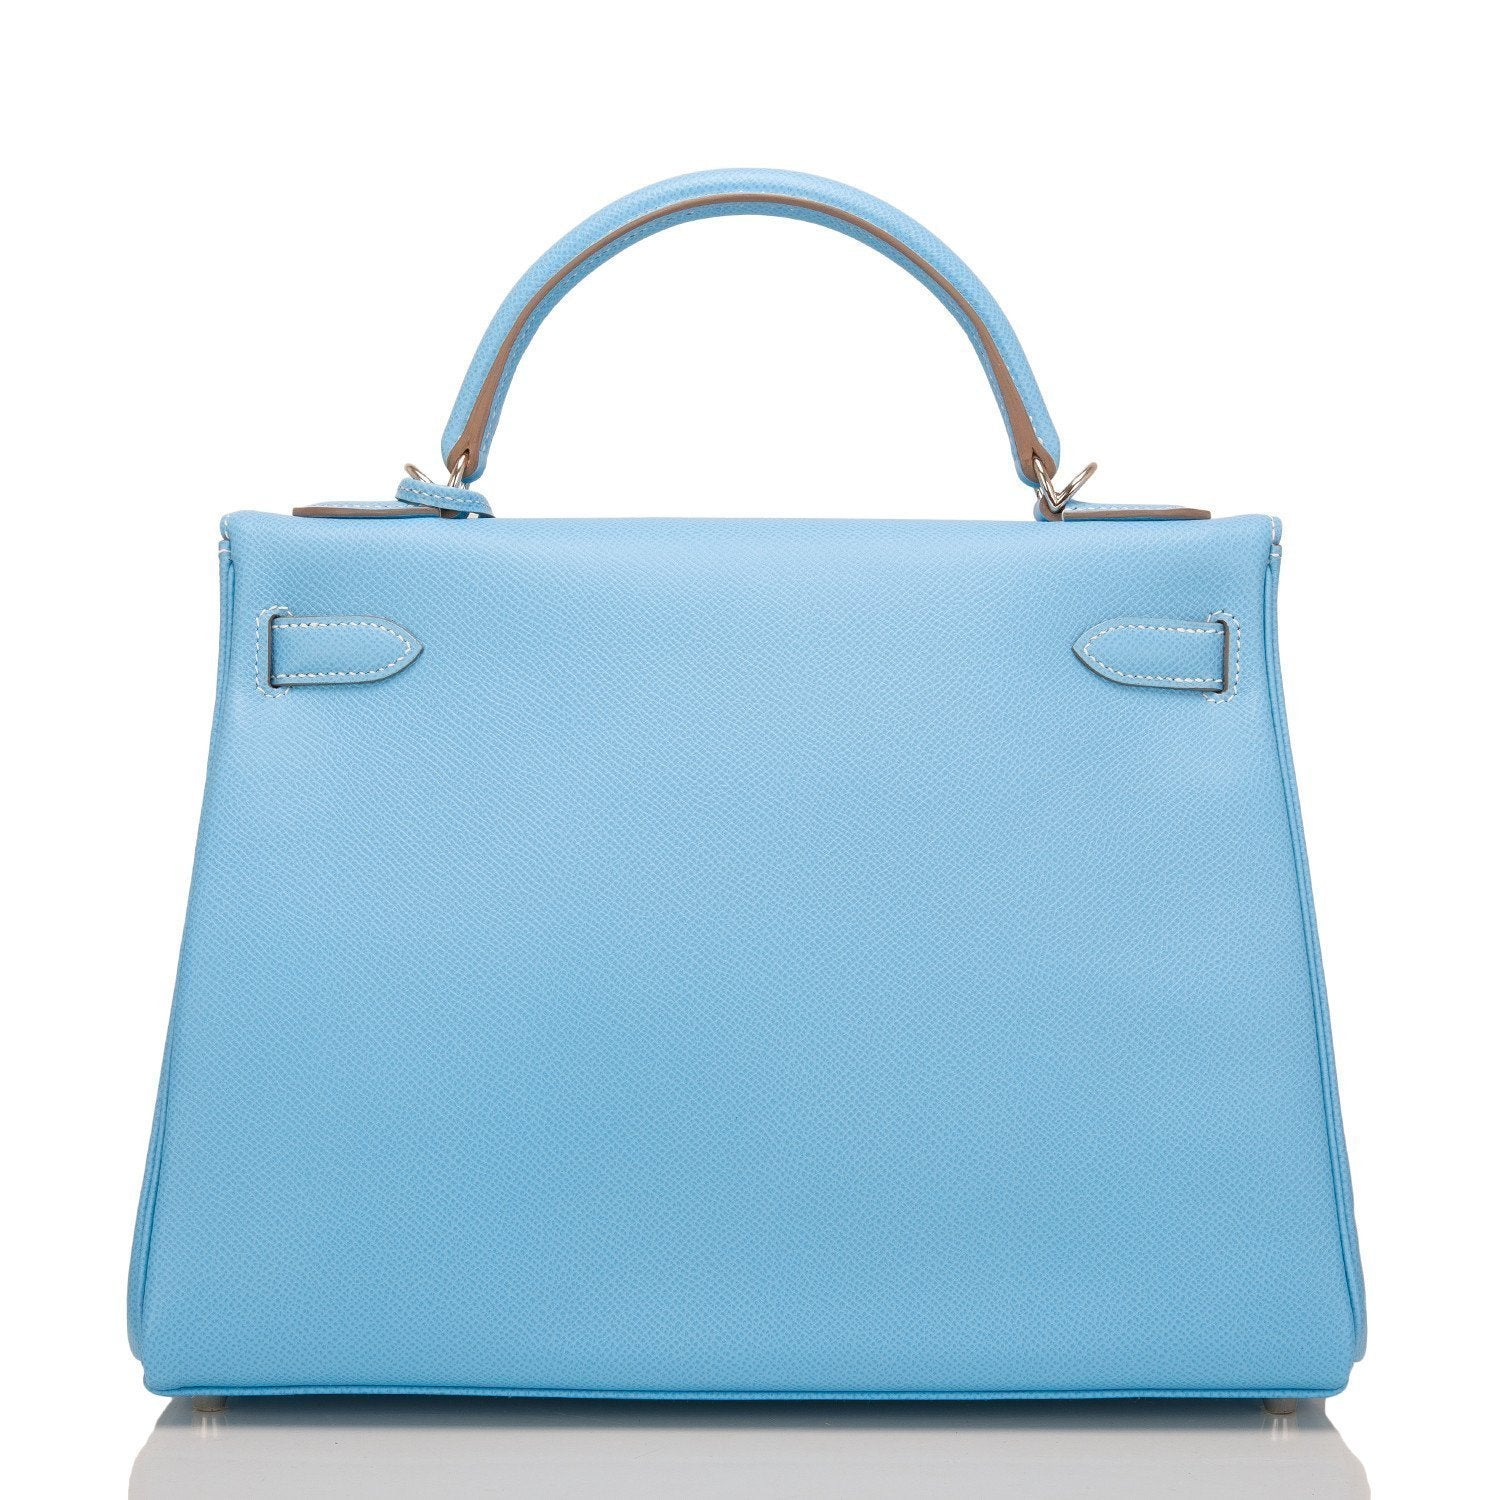 Hermes Bi Color Celeste And Mykonos Epsom Retourne Candy Kelly 32Cm Handbags